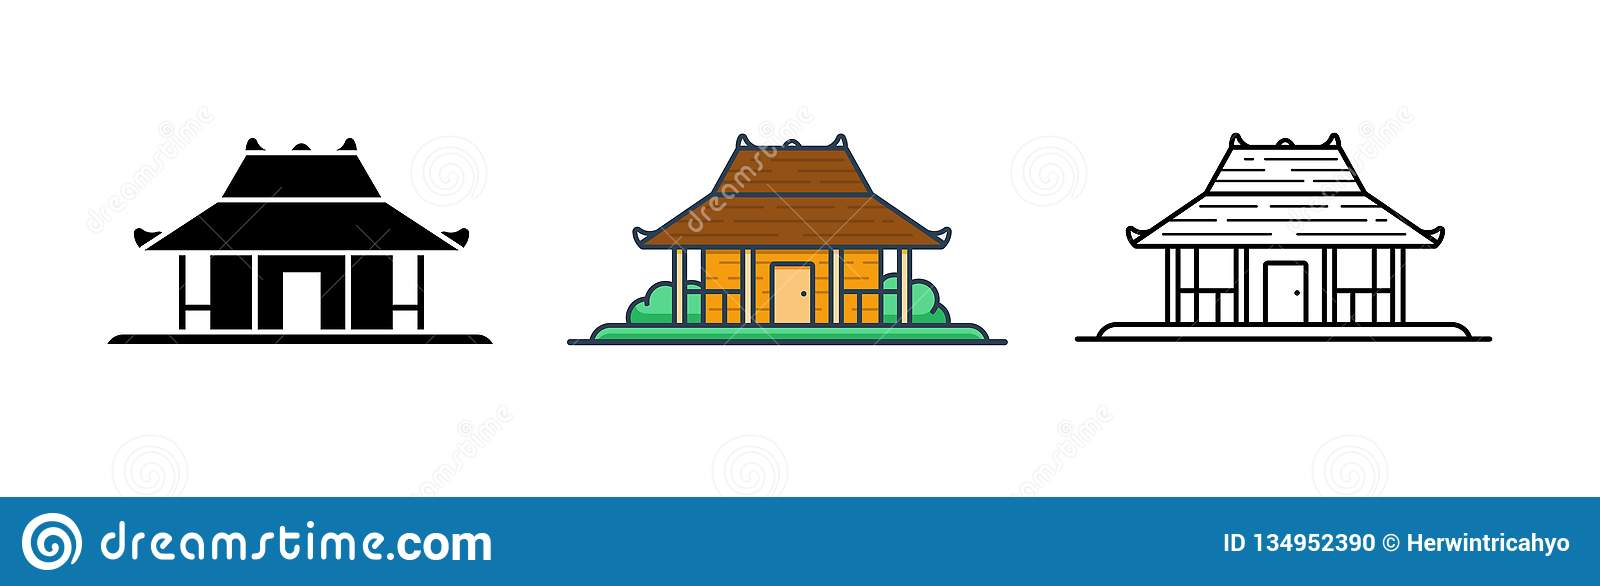 joglo indonesian traditional house vector illustration set stock vector illustration of indonesia javanese 134952390 https www dreamstime com joglo indonesian traditional house vector illustration set joglo indonesian traditional house vector illustration set image134952390